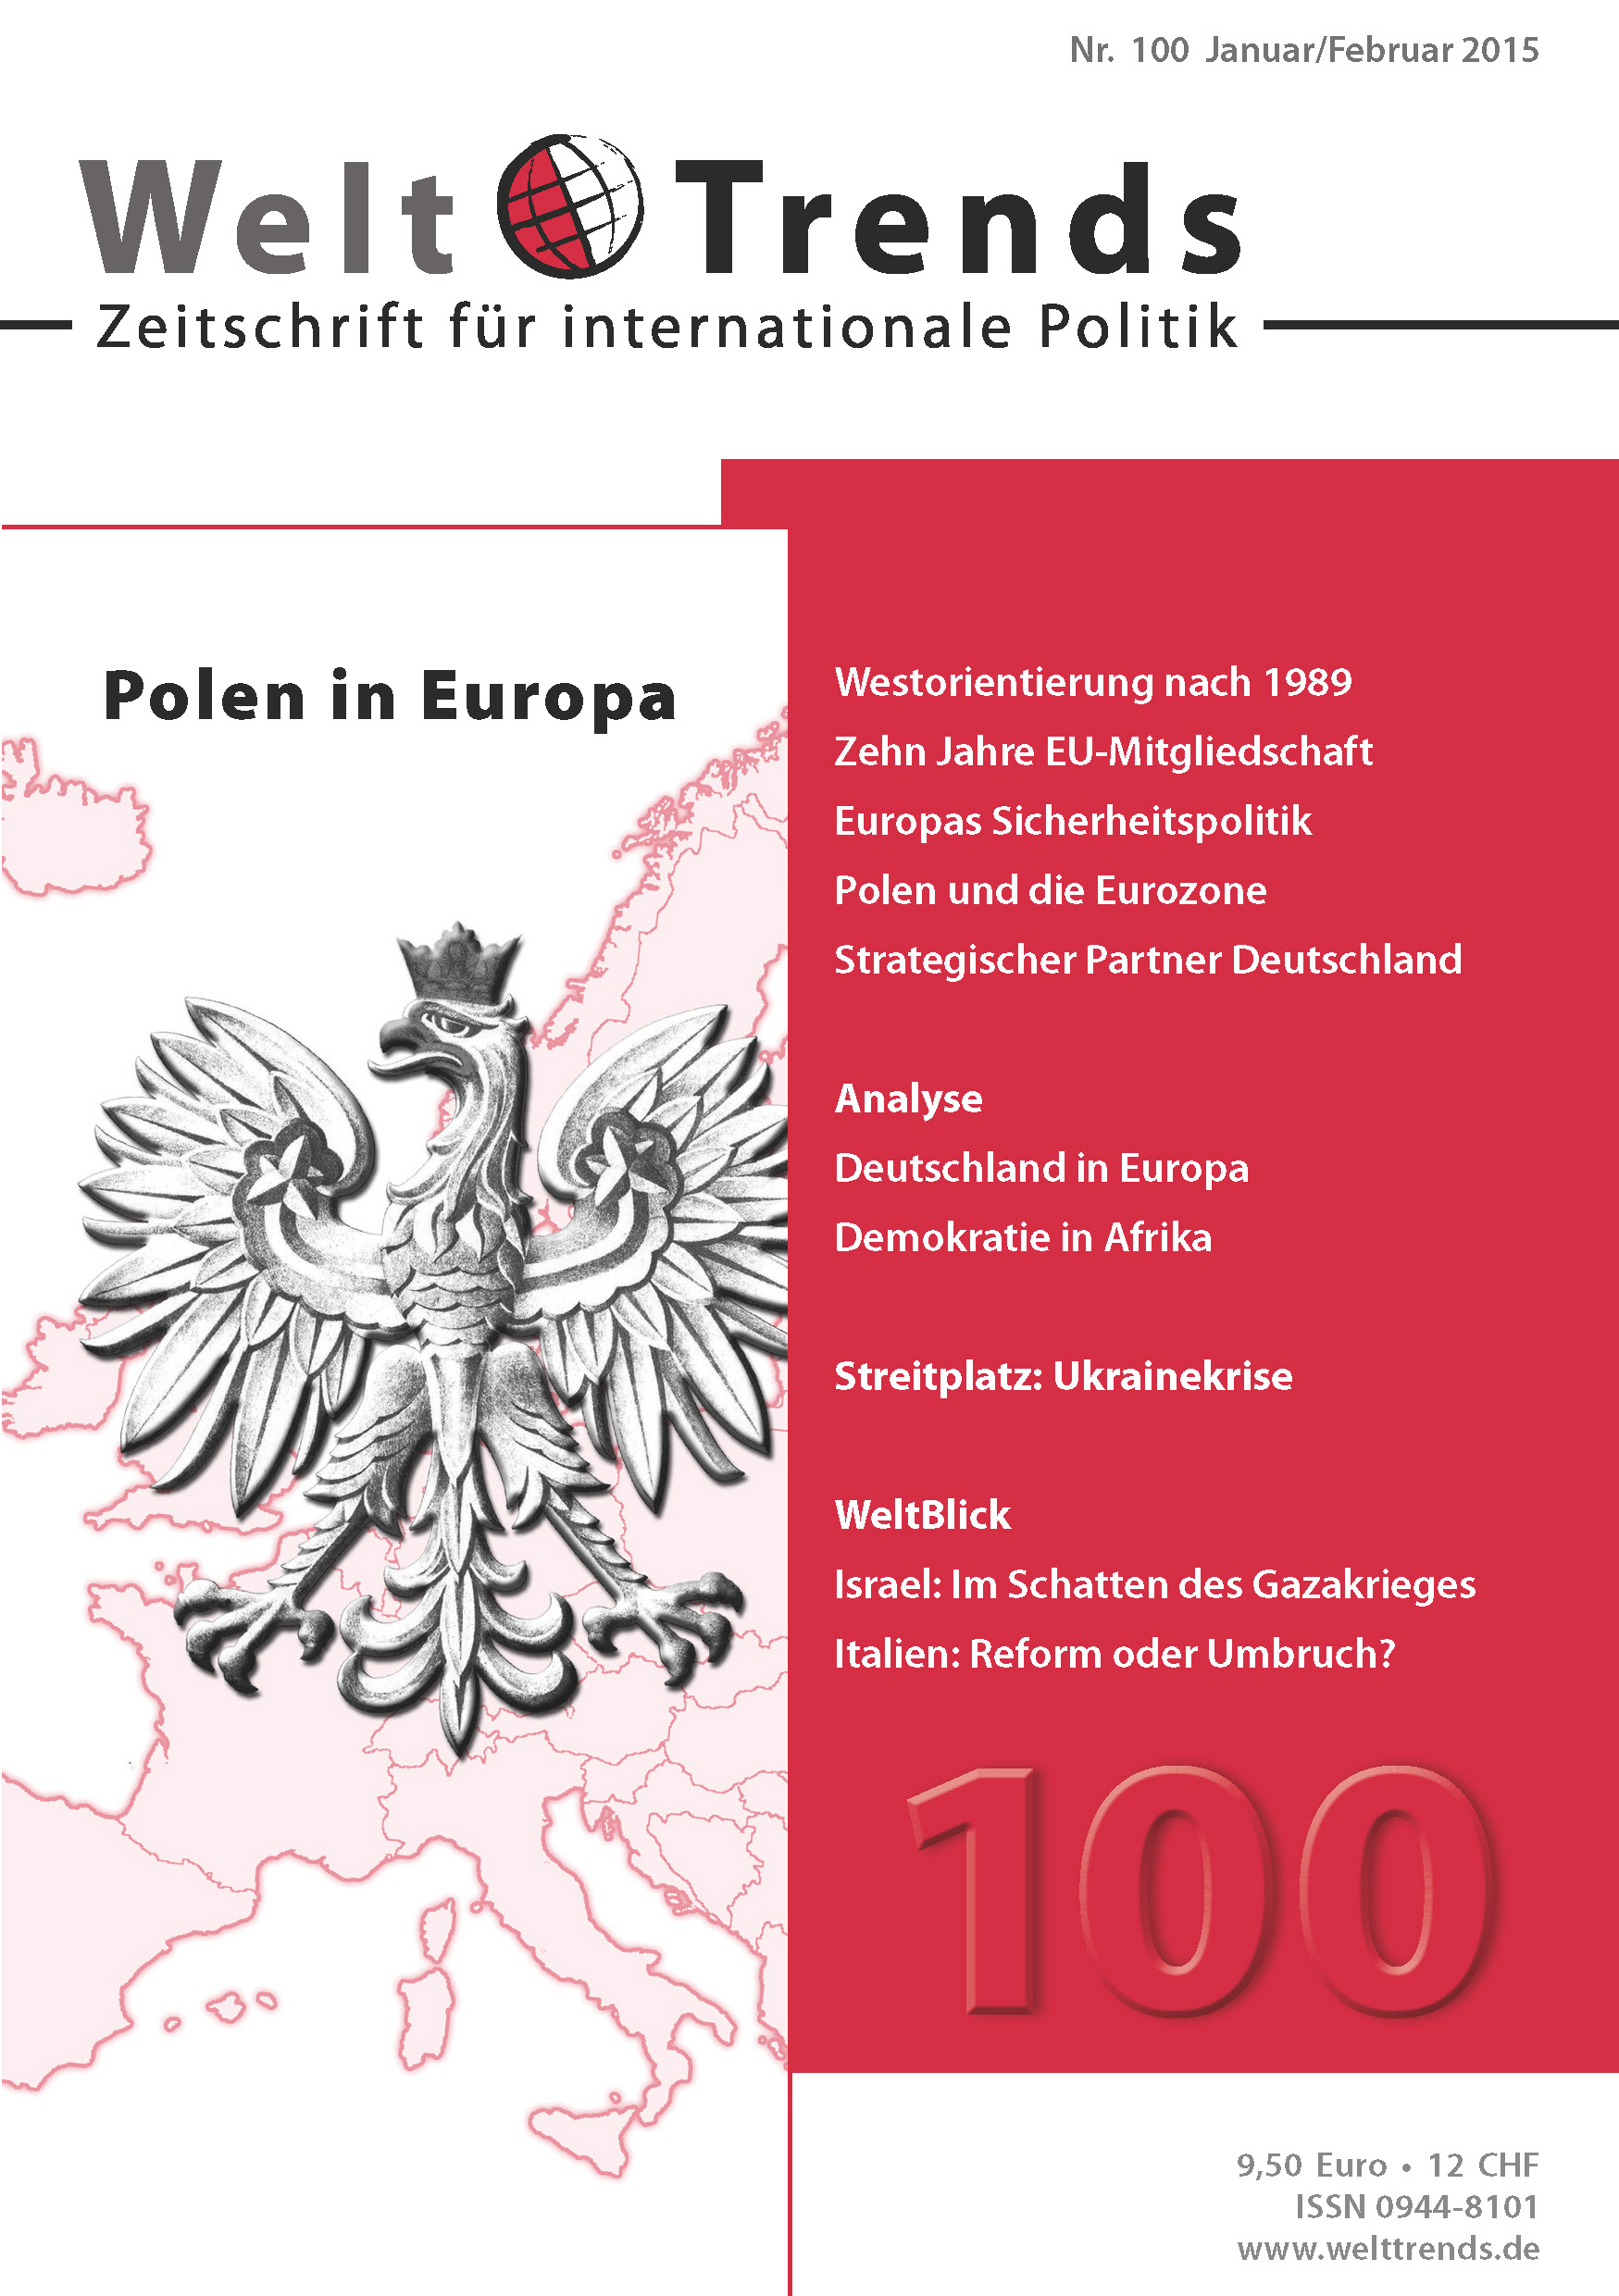 WeltTrends 100: Polen in Europa